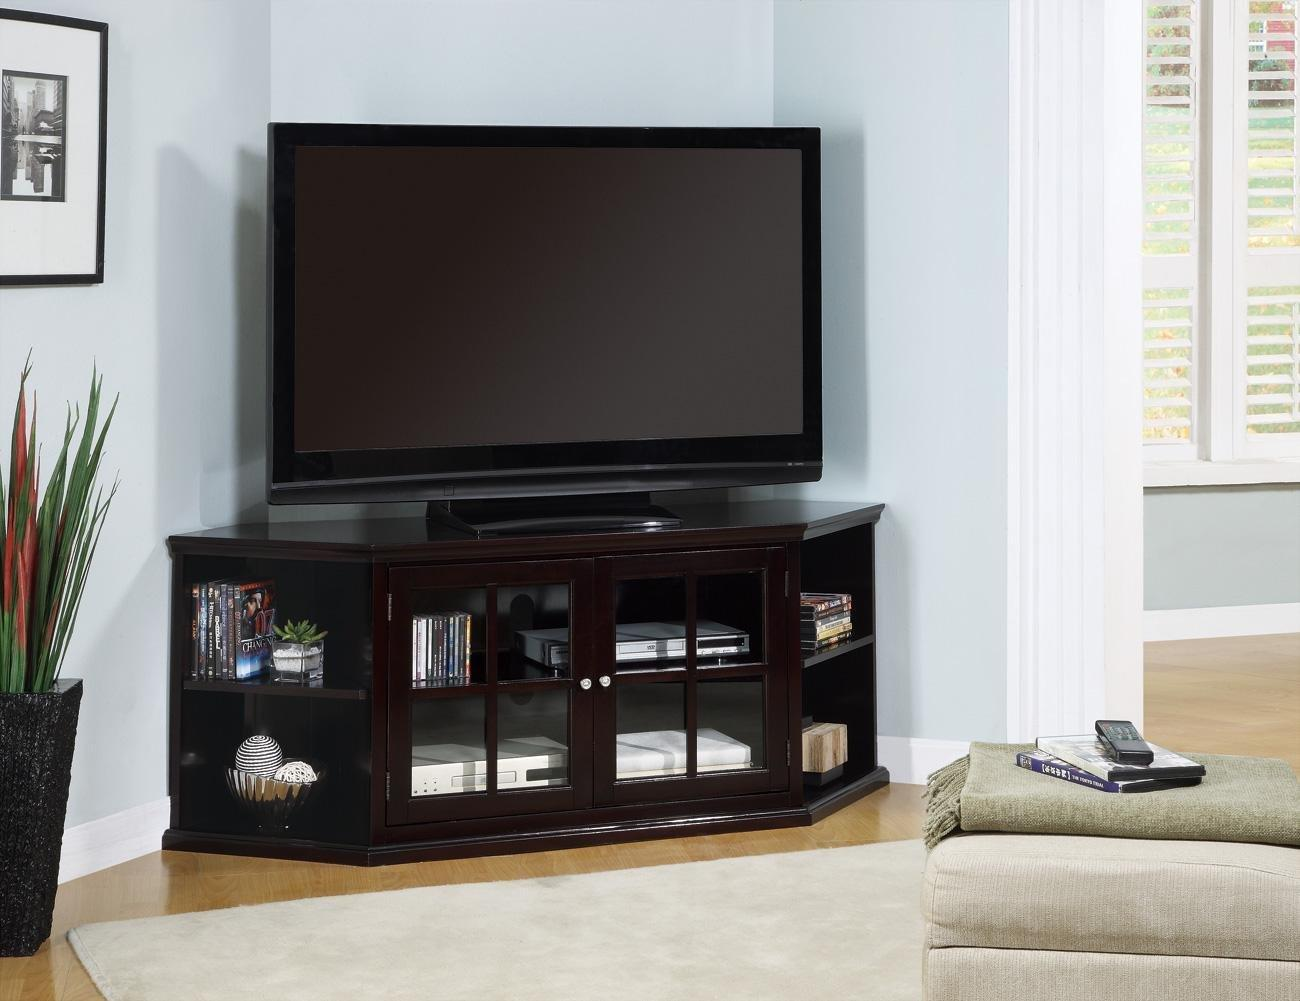 TV stand for corner TV